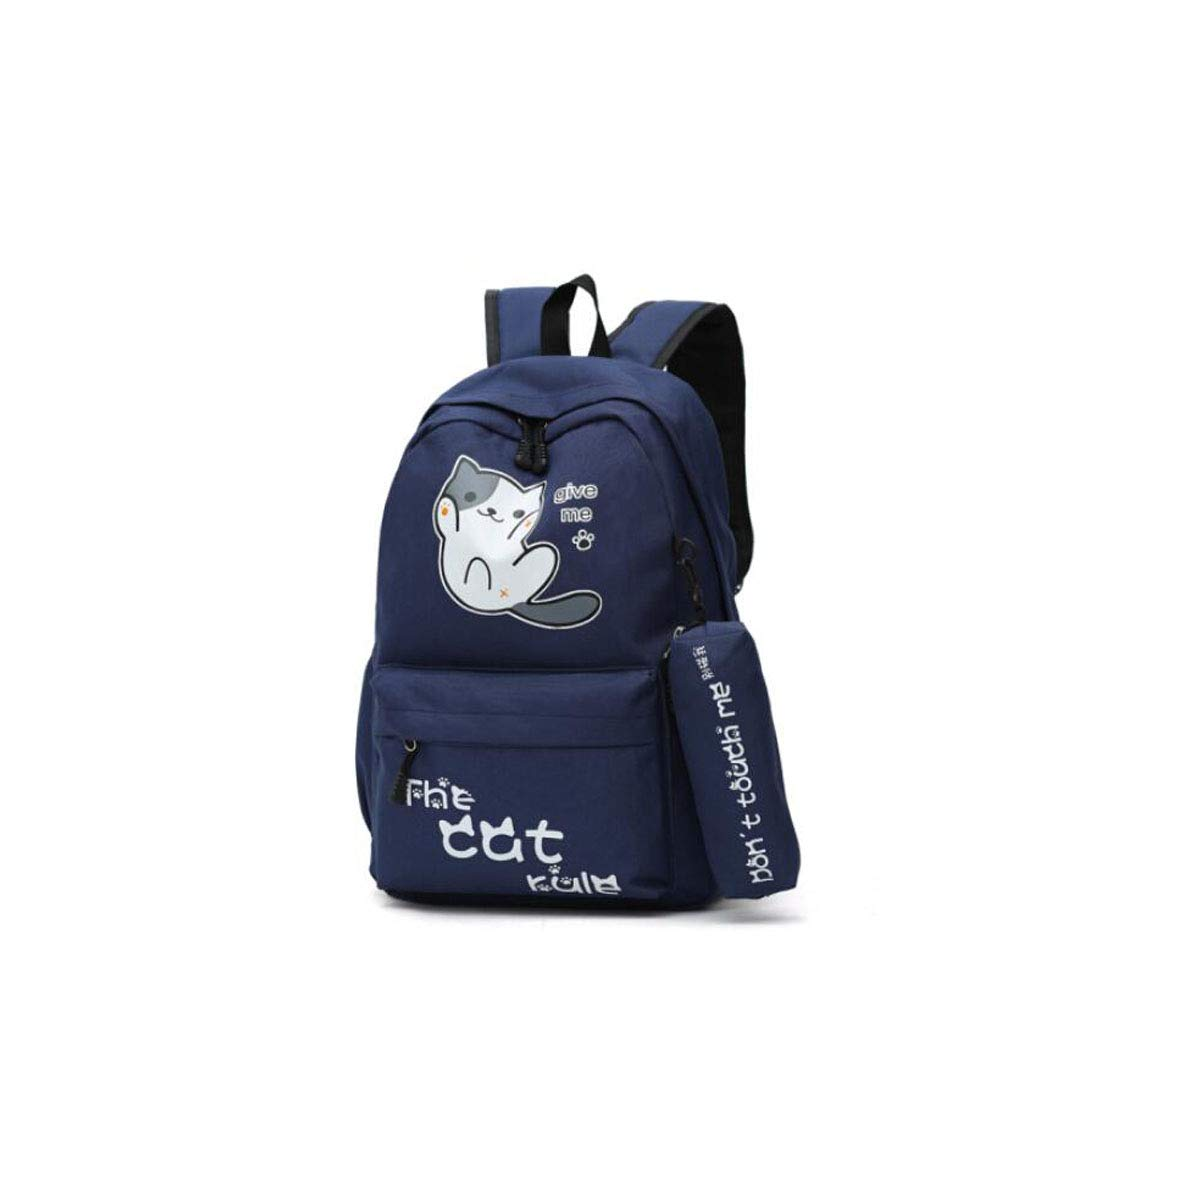 HENG Primary School Bag Large Capacity Backpack, Sky blueee for Hiking, Traveling & Camping (color   Dark blueee)